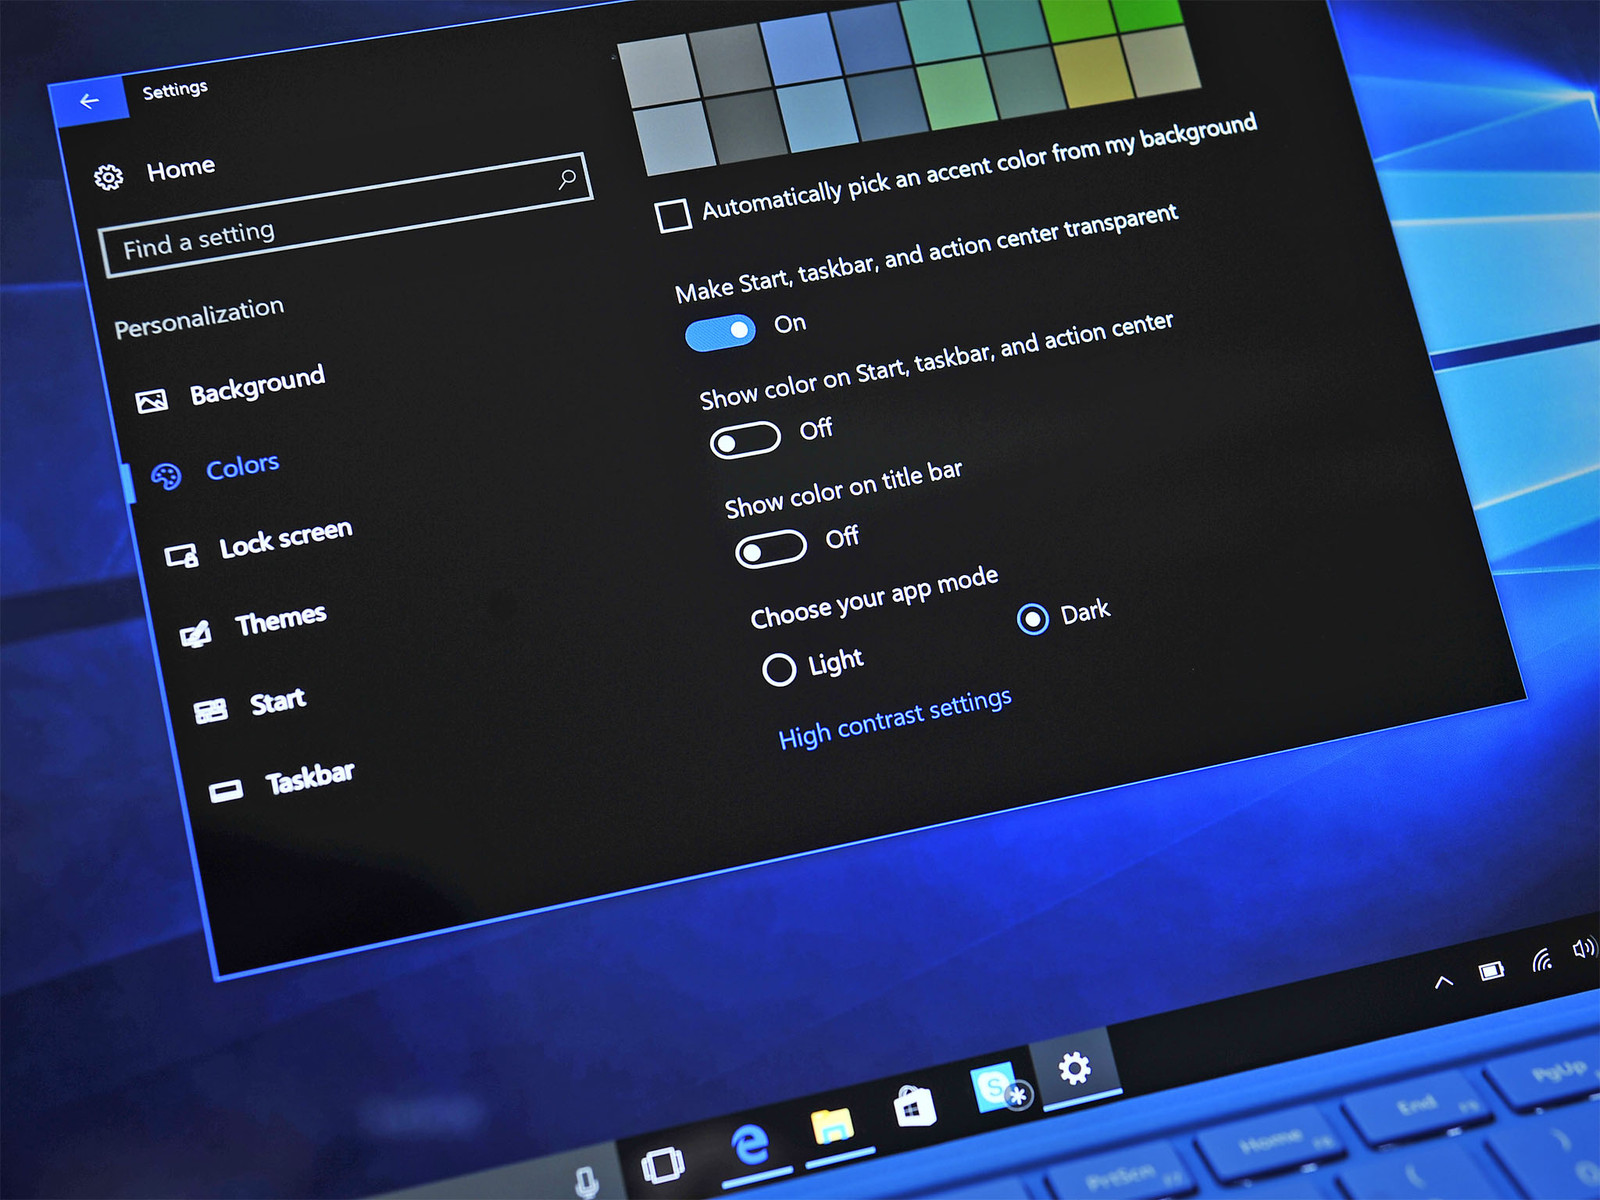 Windows 10 Anniversary Update common problems and how to fix them